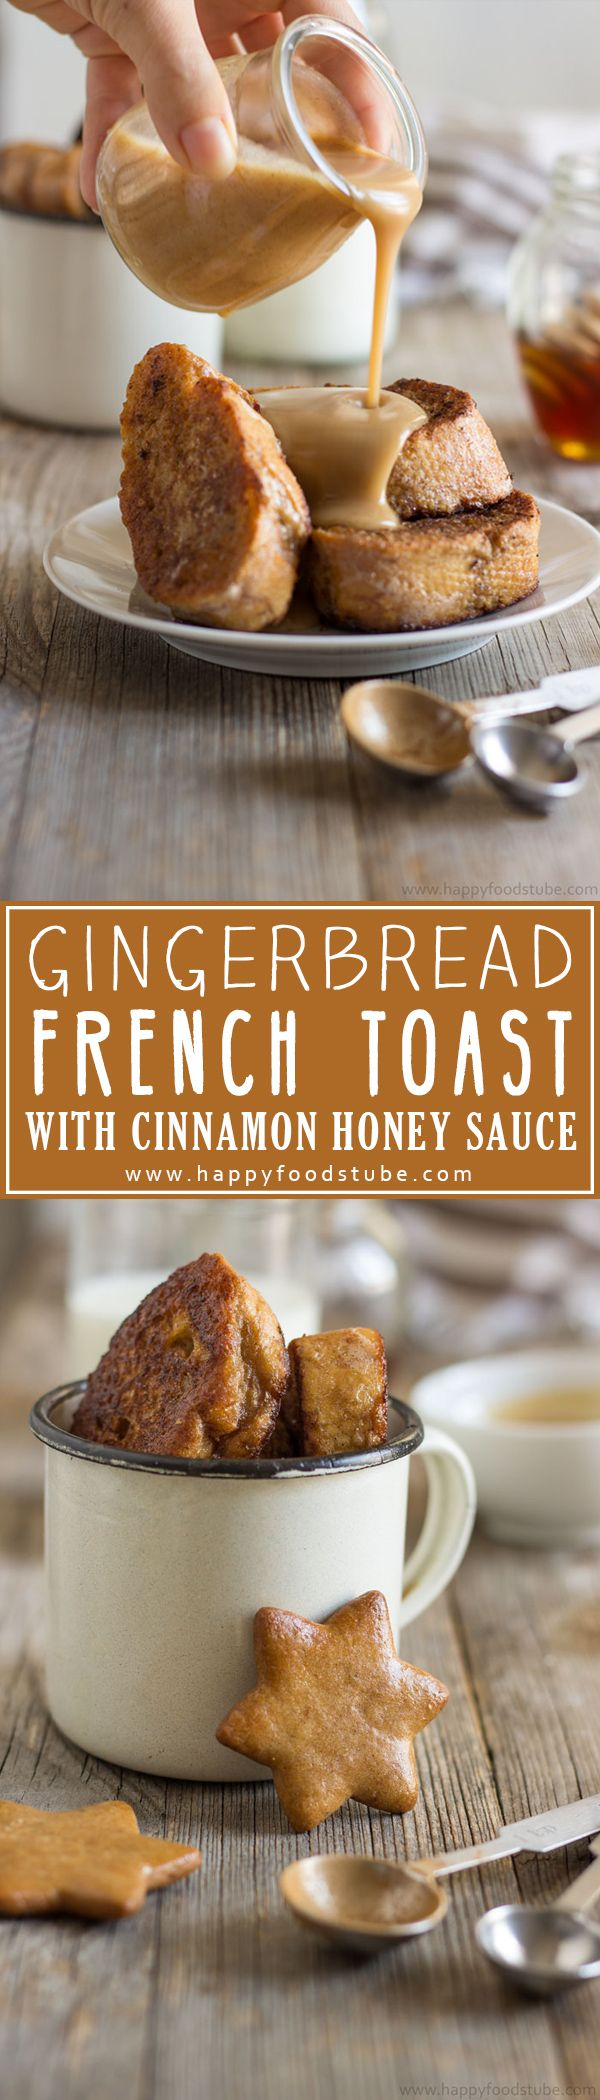 Gingerbread French Toast with Cinnamon Honey Sauce Recipe. A great breakfast-in-bed or brunch recipe with a hint of Christmas & mouth-watering sauce!